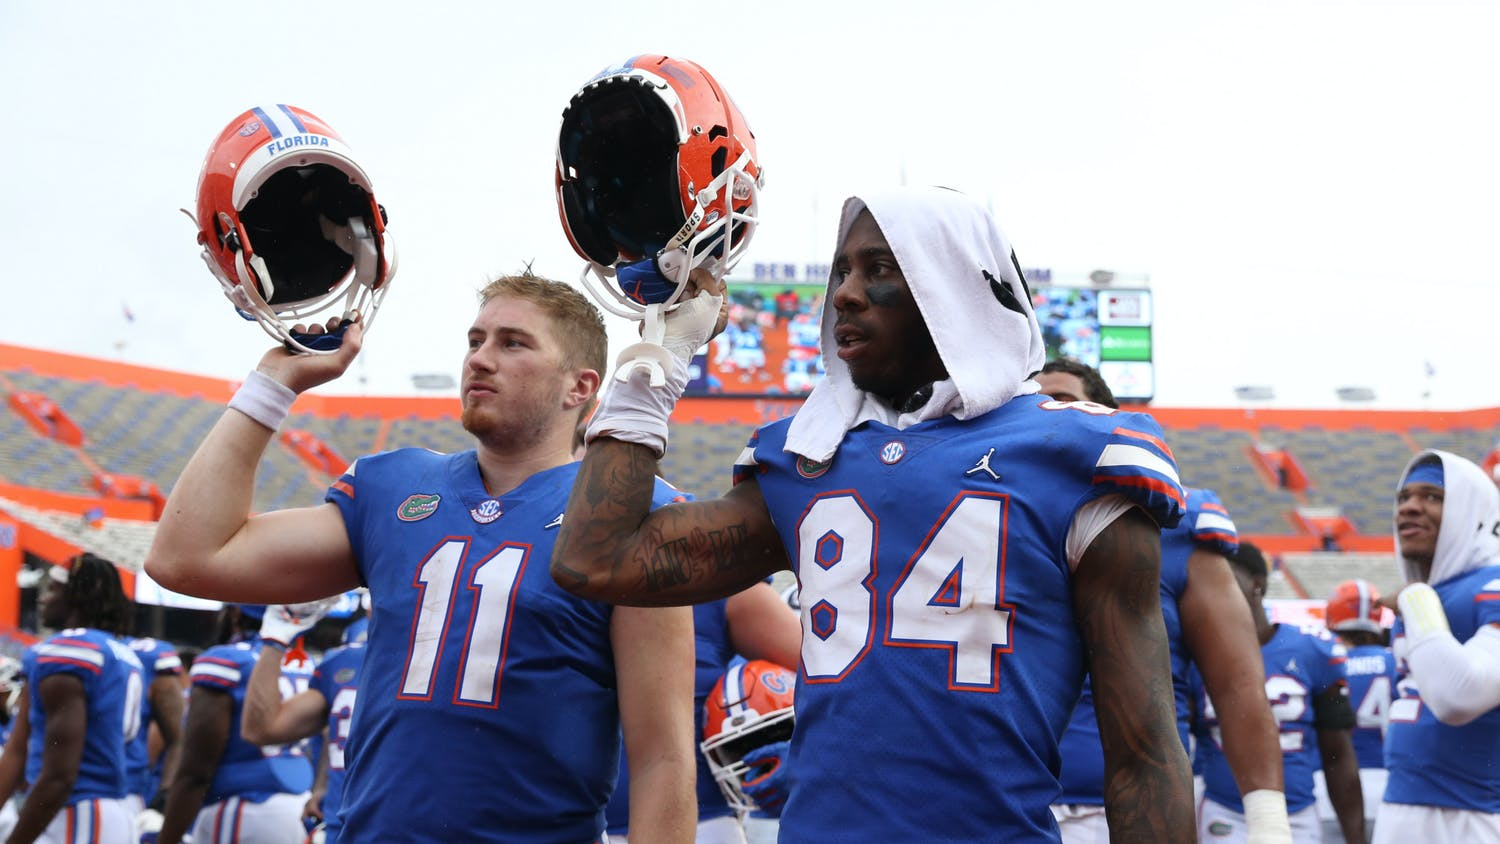 Gators tight end Kyle Pitts (84) and quarterback Kyle Trask (11) are regarded as two of the best college football players in the country this season.